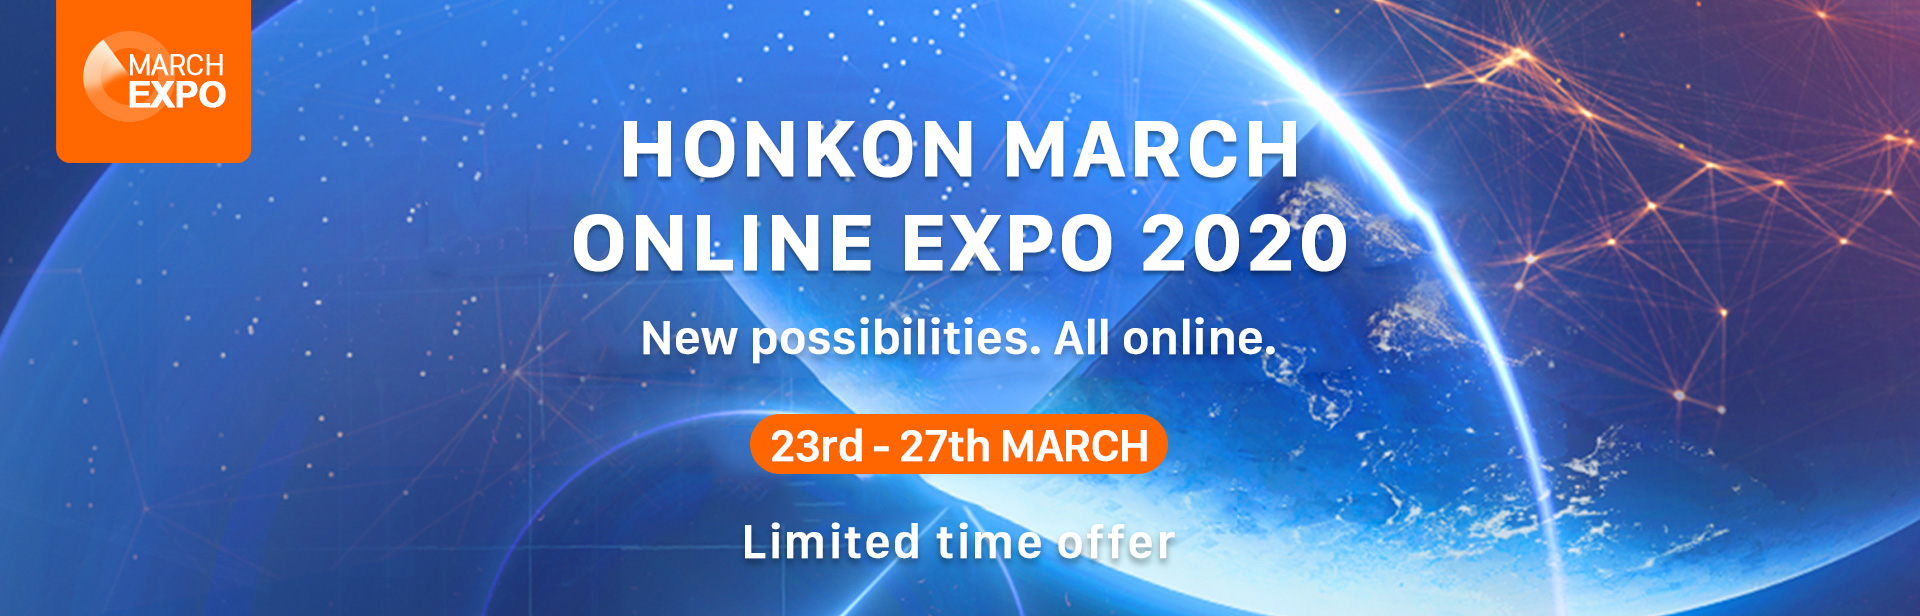 HONKON MARCH ONLINE EXPO 2020